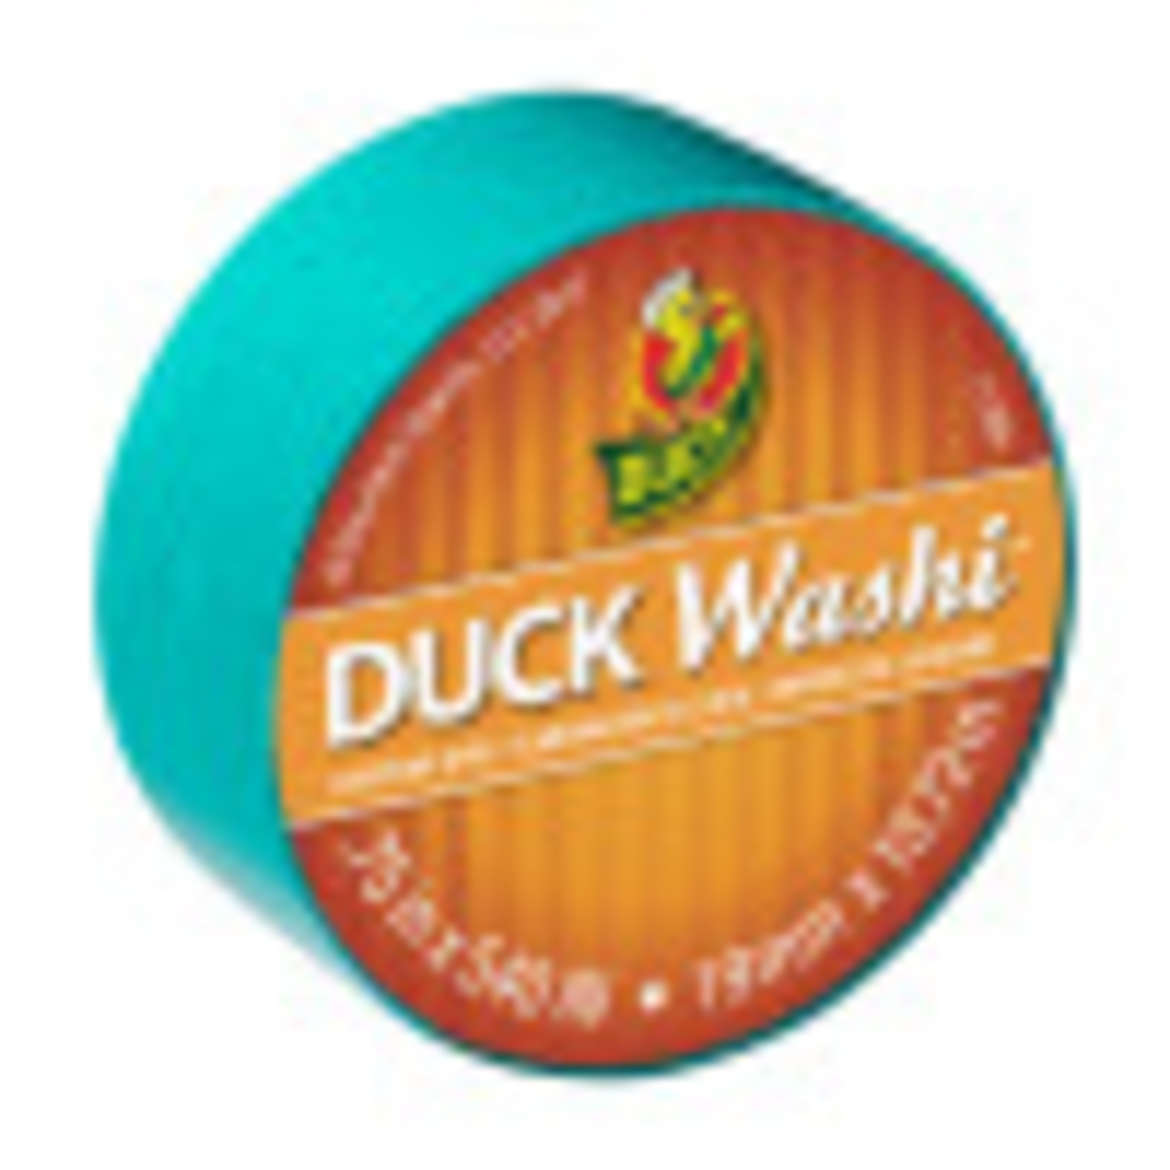 Duck Washi® Crafting Tape - Teal, 0.75 in. X 15 yd. Image